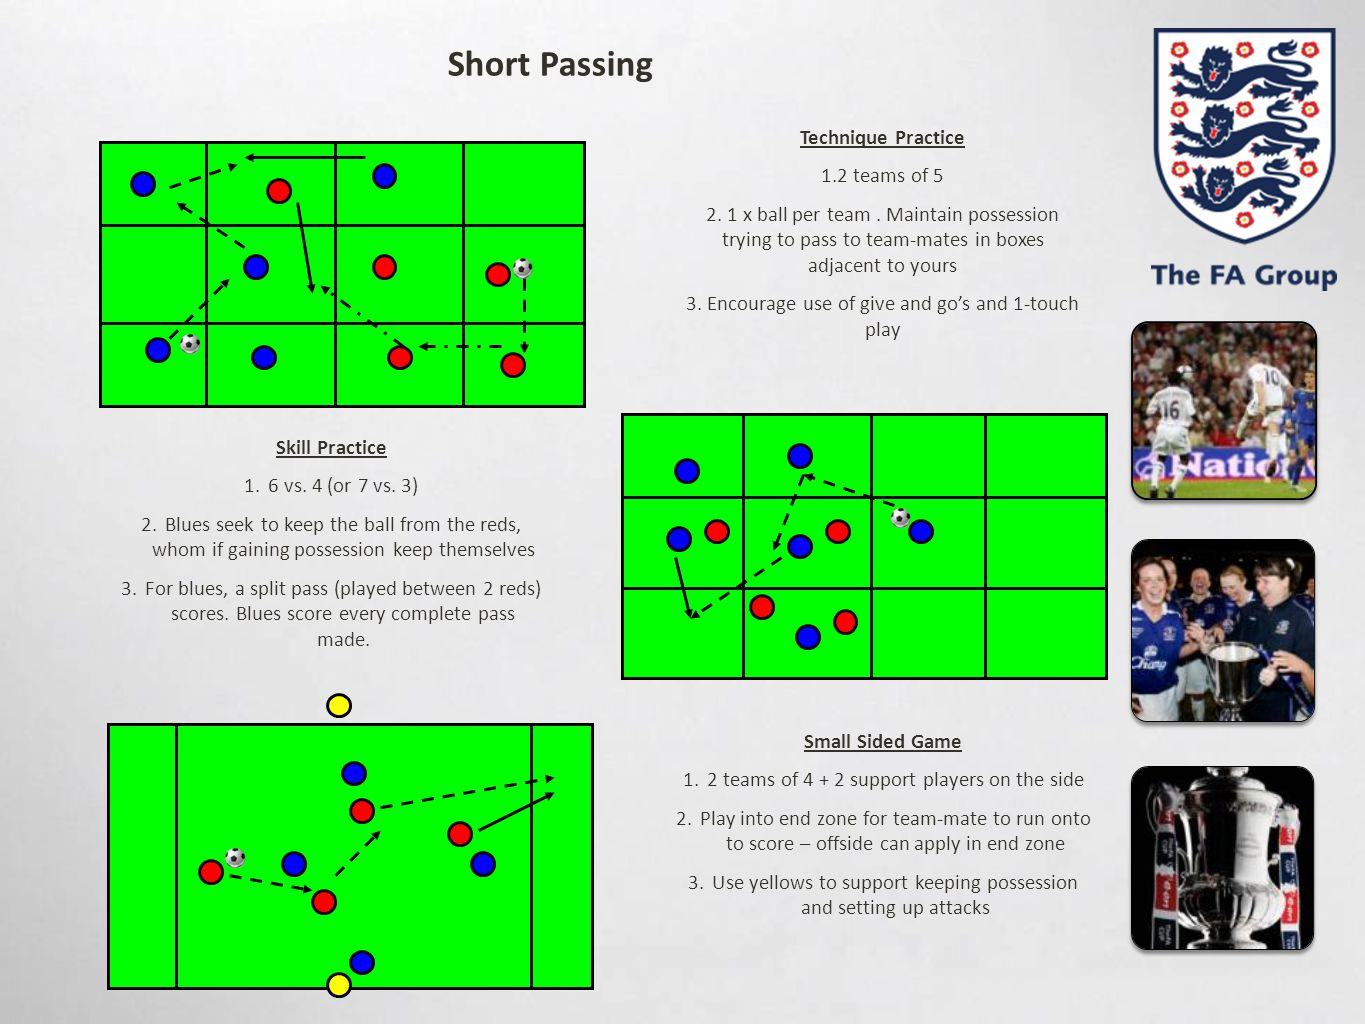 Short Passing Skill Practice 1.6 vs. 4 (or 7 vs. 3) 2.Blues seek to keep the ball from the reds, whom if gaining possession keep themselves 3.For blue